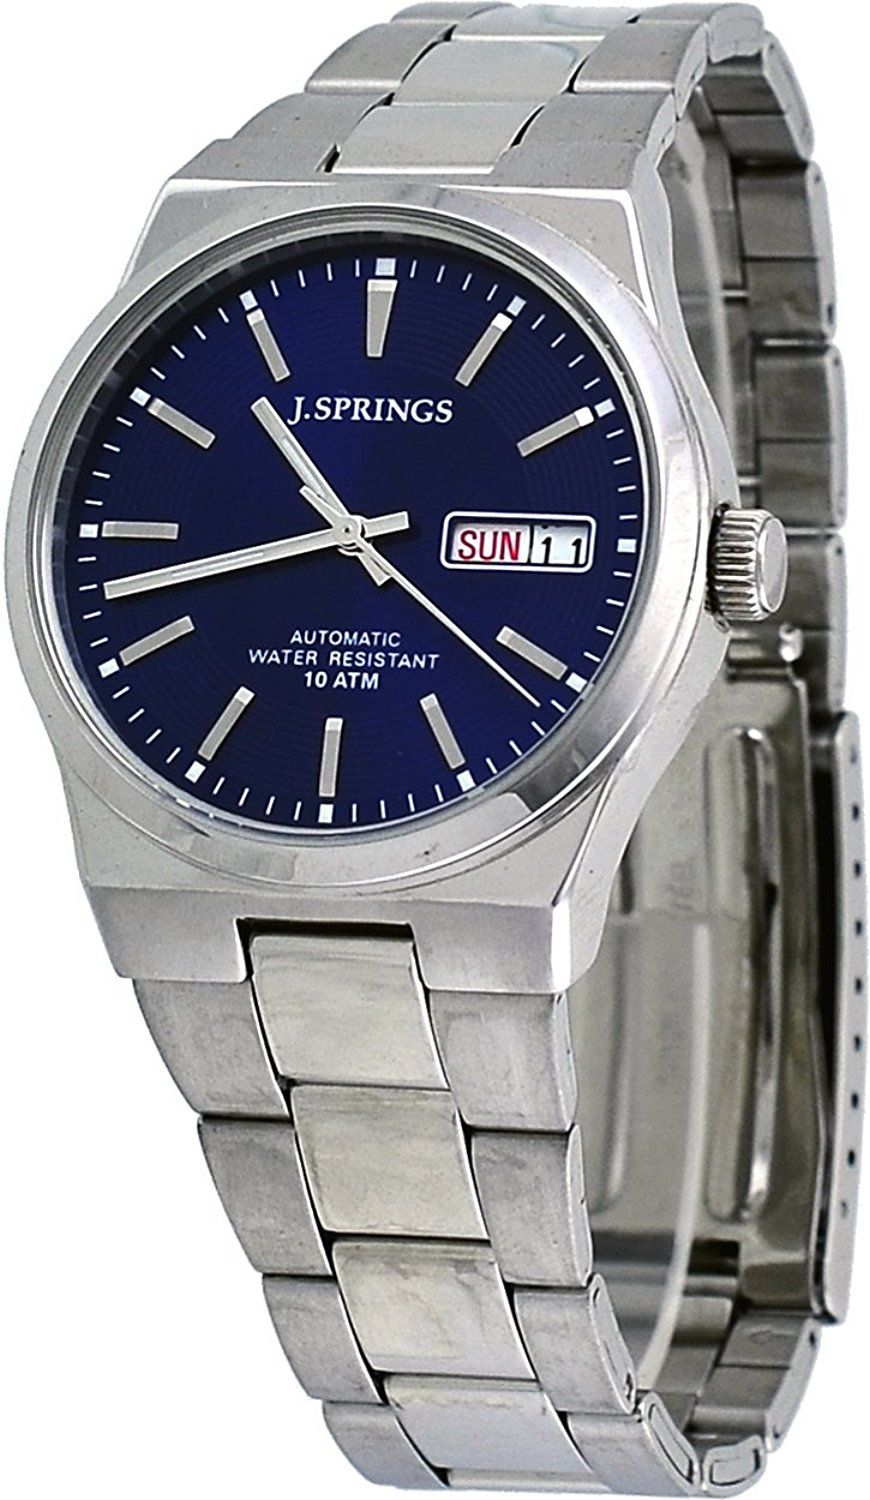 d781b37dd Amazon.com: J Springs #BEB032 Men's Stainless Steel Blue Dial Day Date  Automatic